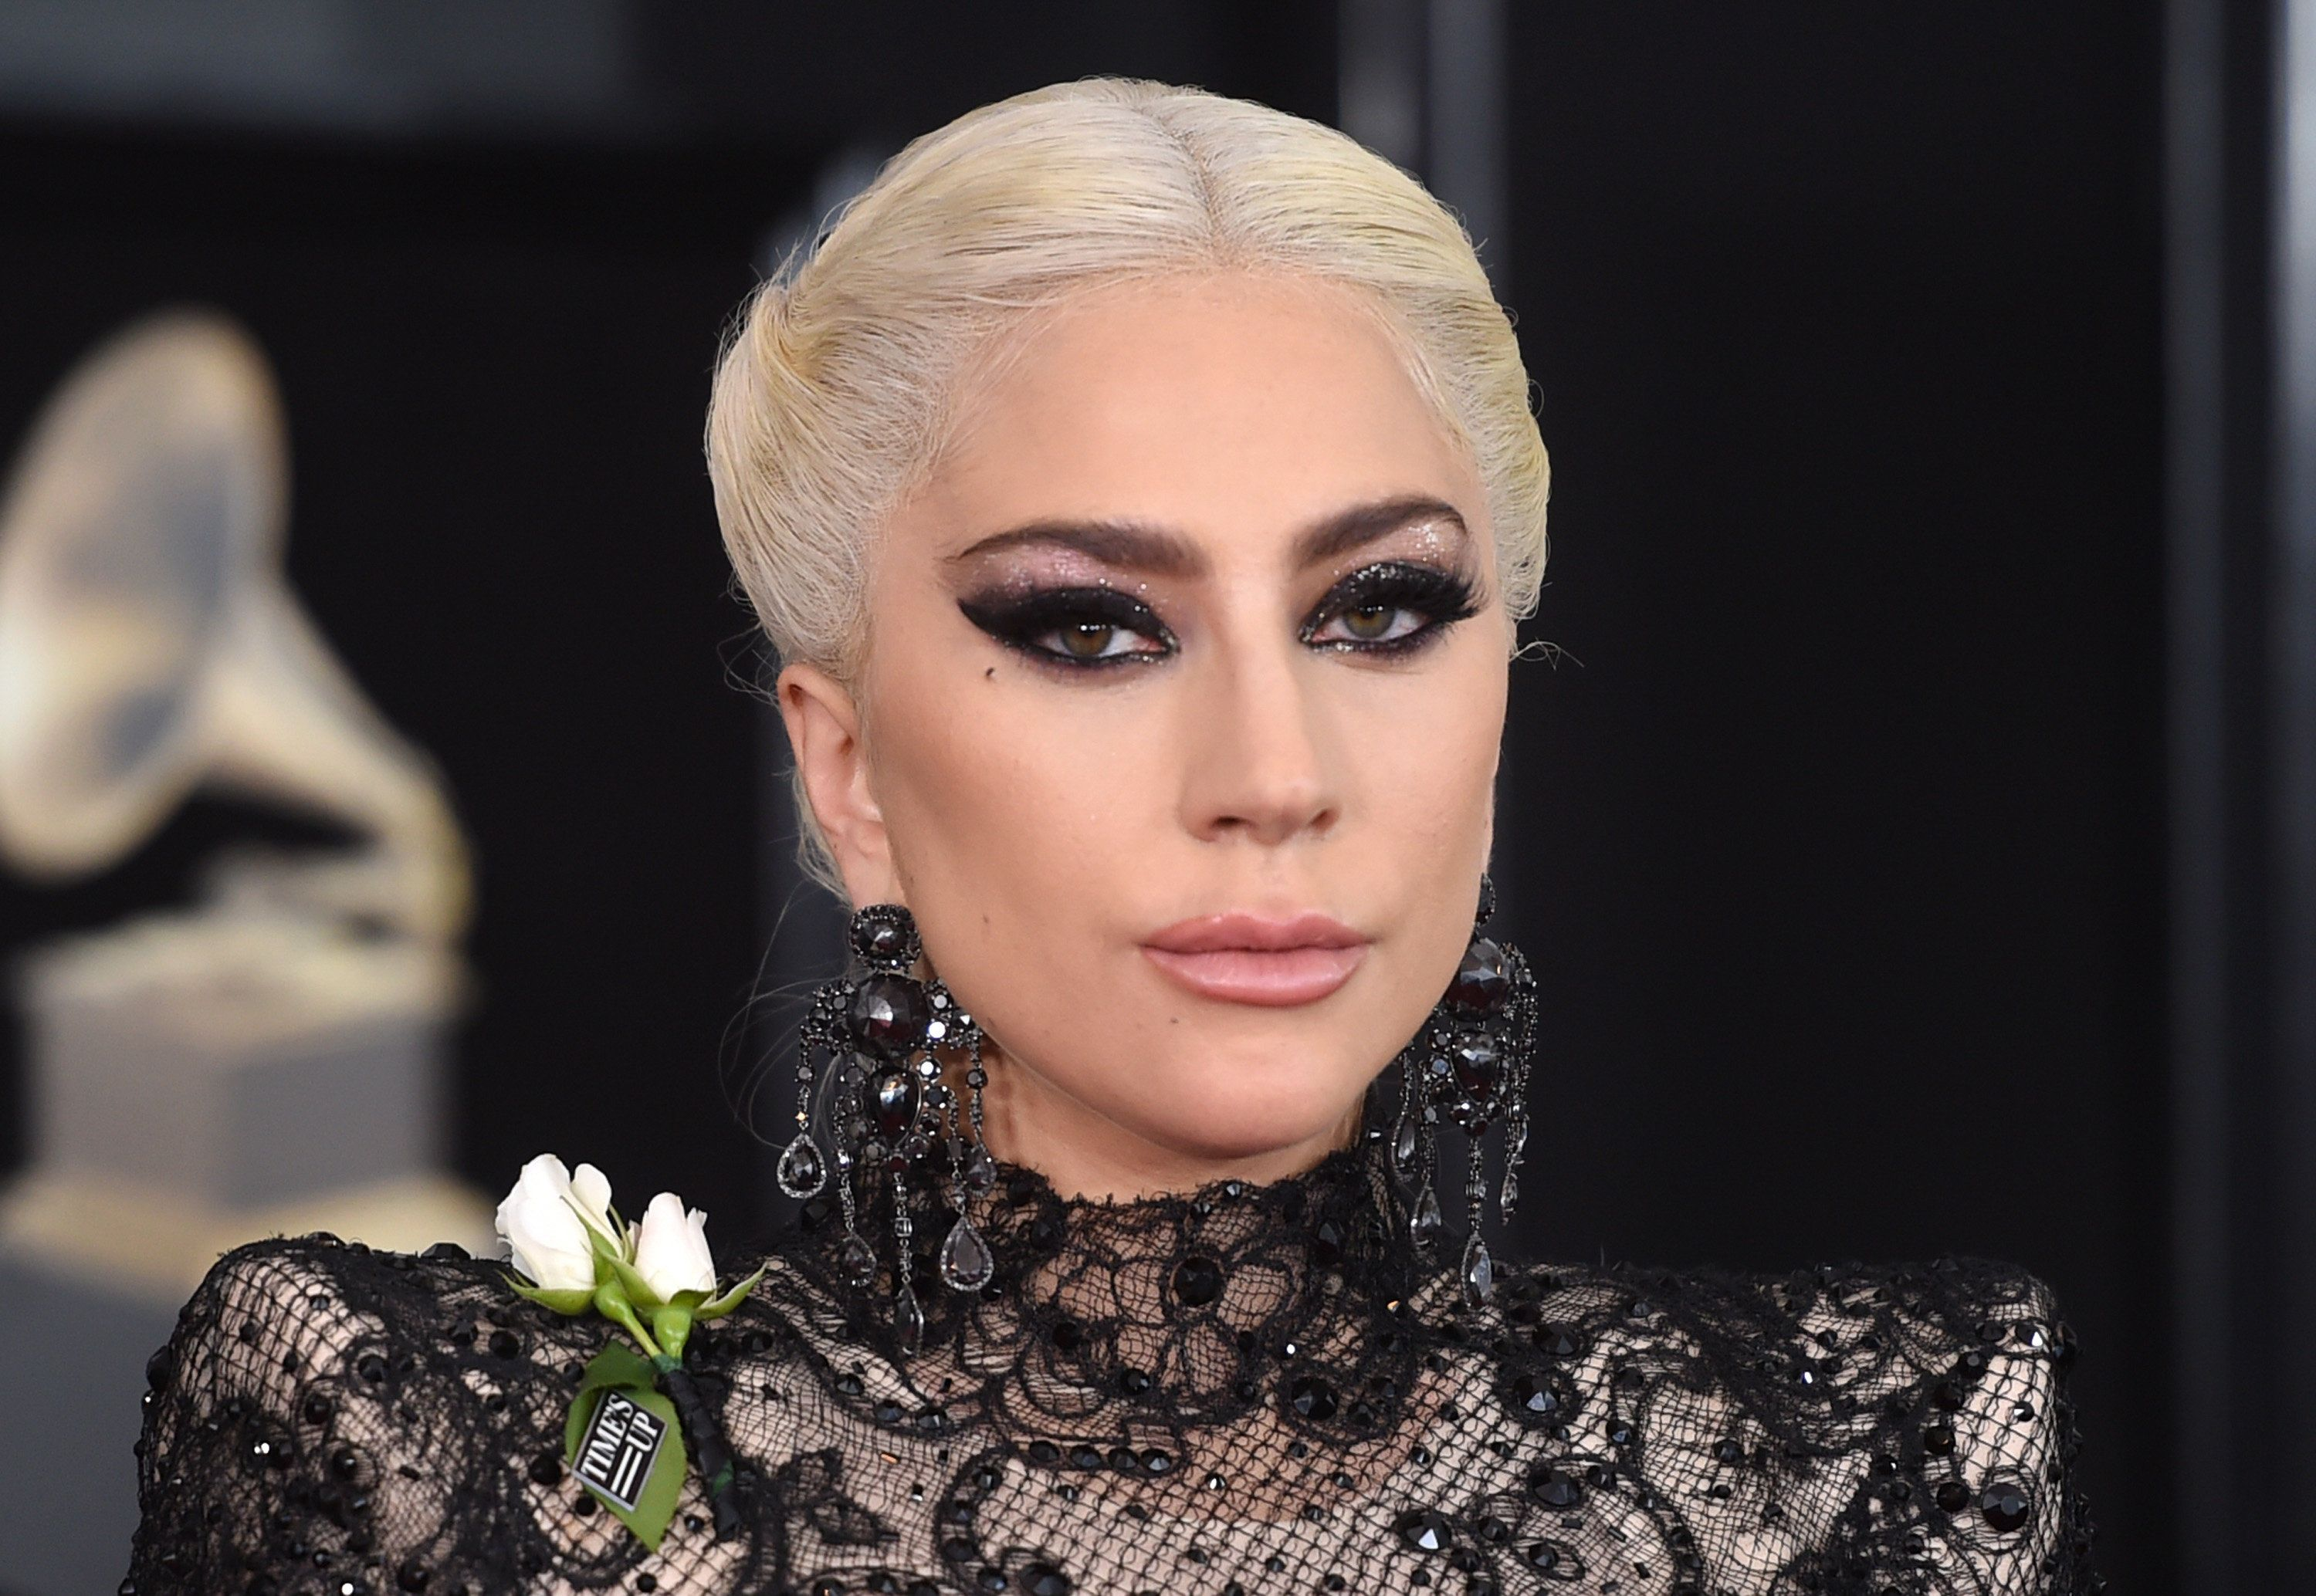 NEW YORK, NY - JANUARY 28:  Recording artist Lady Gaga attends the 60th Annual GRAMMY Awards at Madison Square Garden on January 28, 2018 in New York City.  (Photo by Jamie McCarthy/Getty Images)